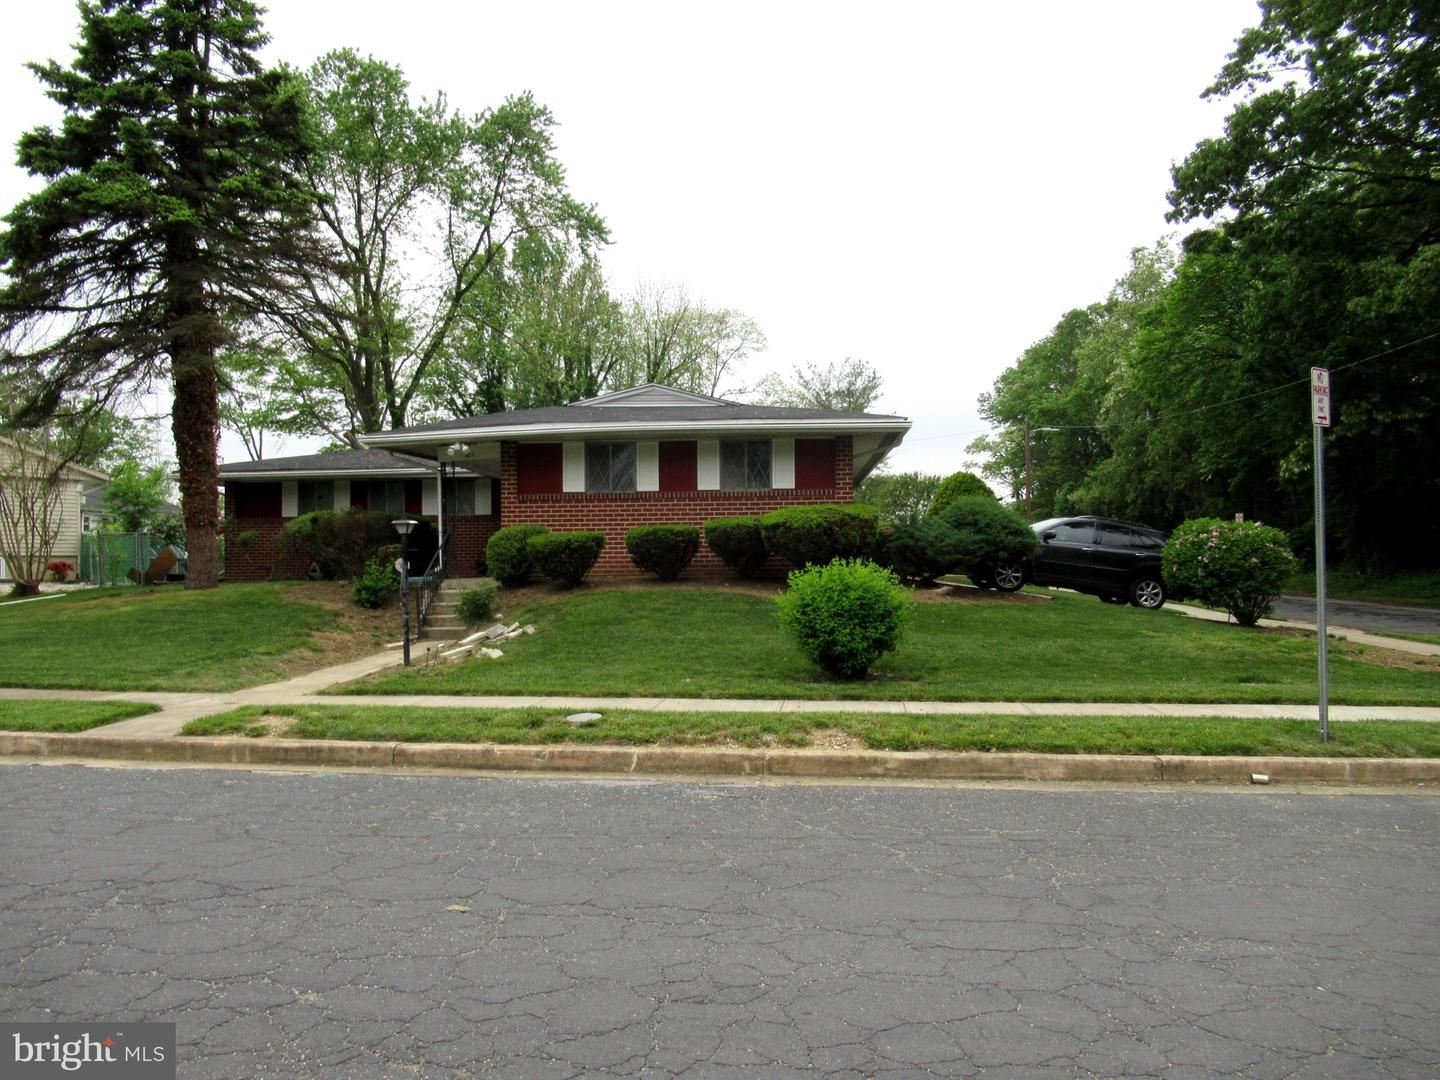 201 SUTER RD, Baltimore, MD 21228 - MLS#: MDBC494674